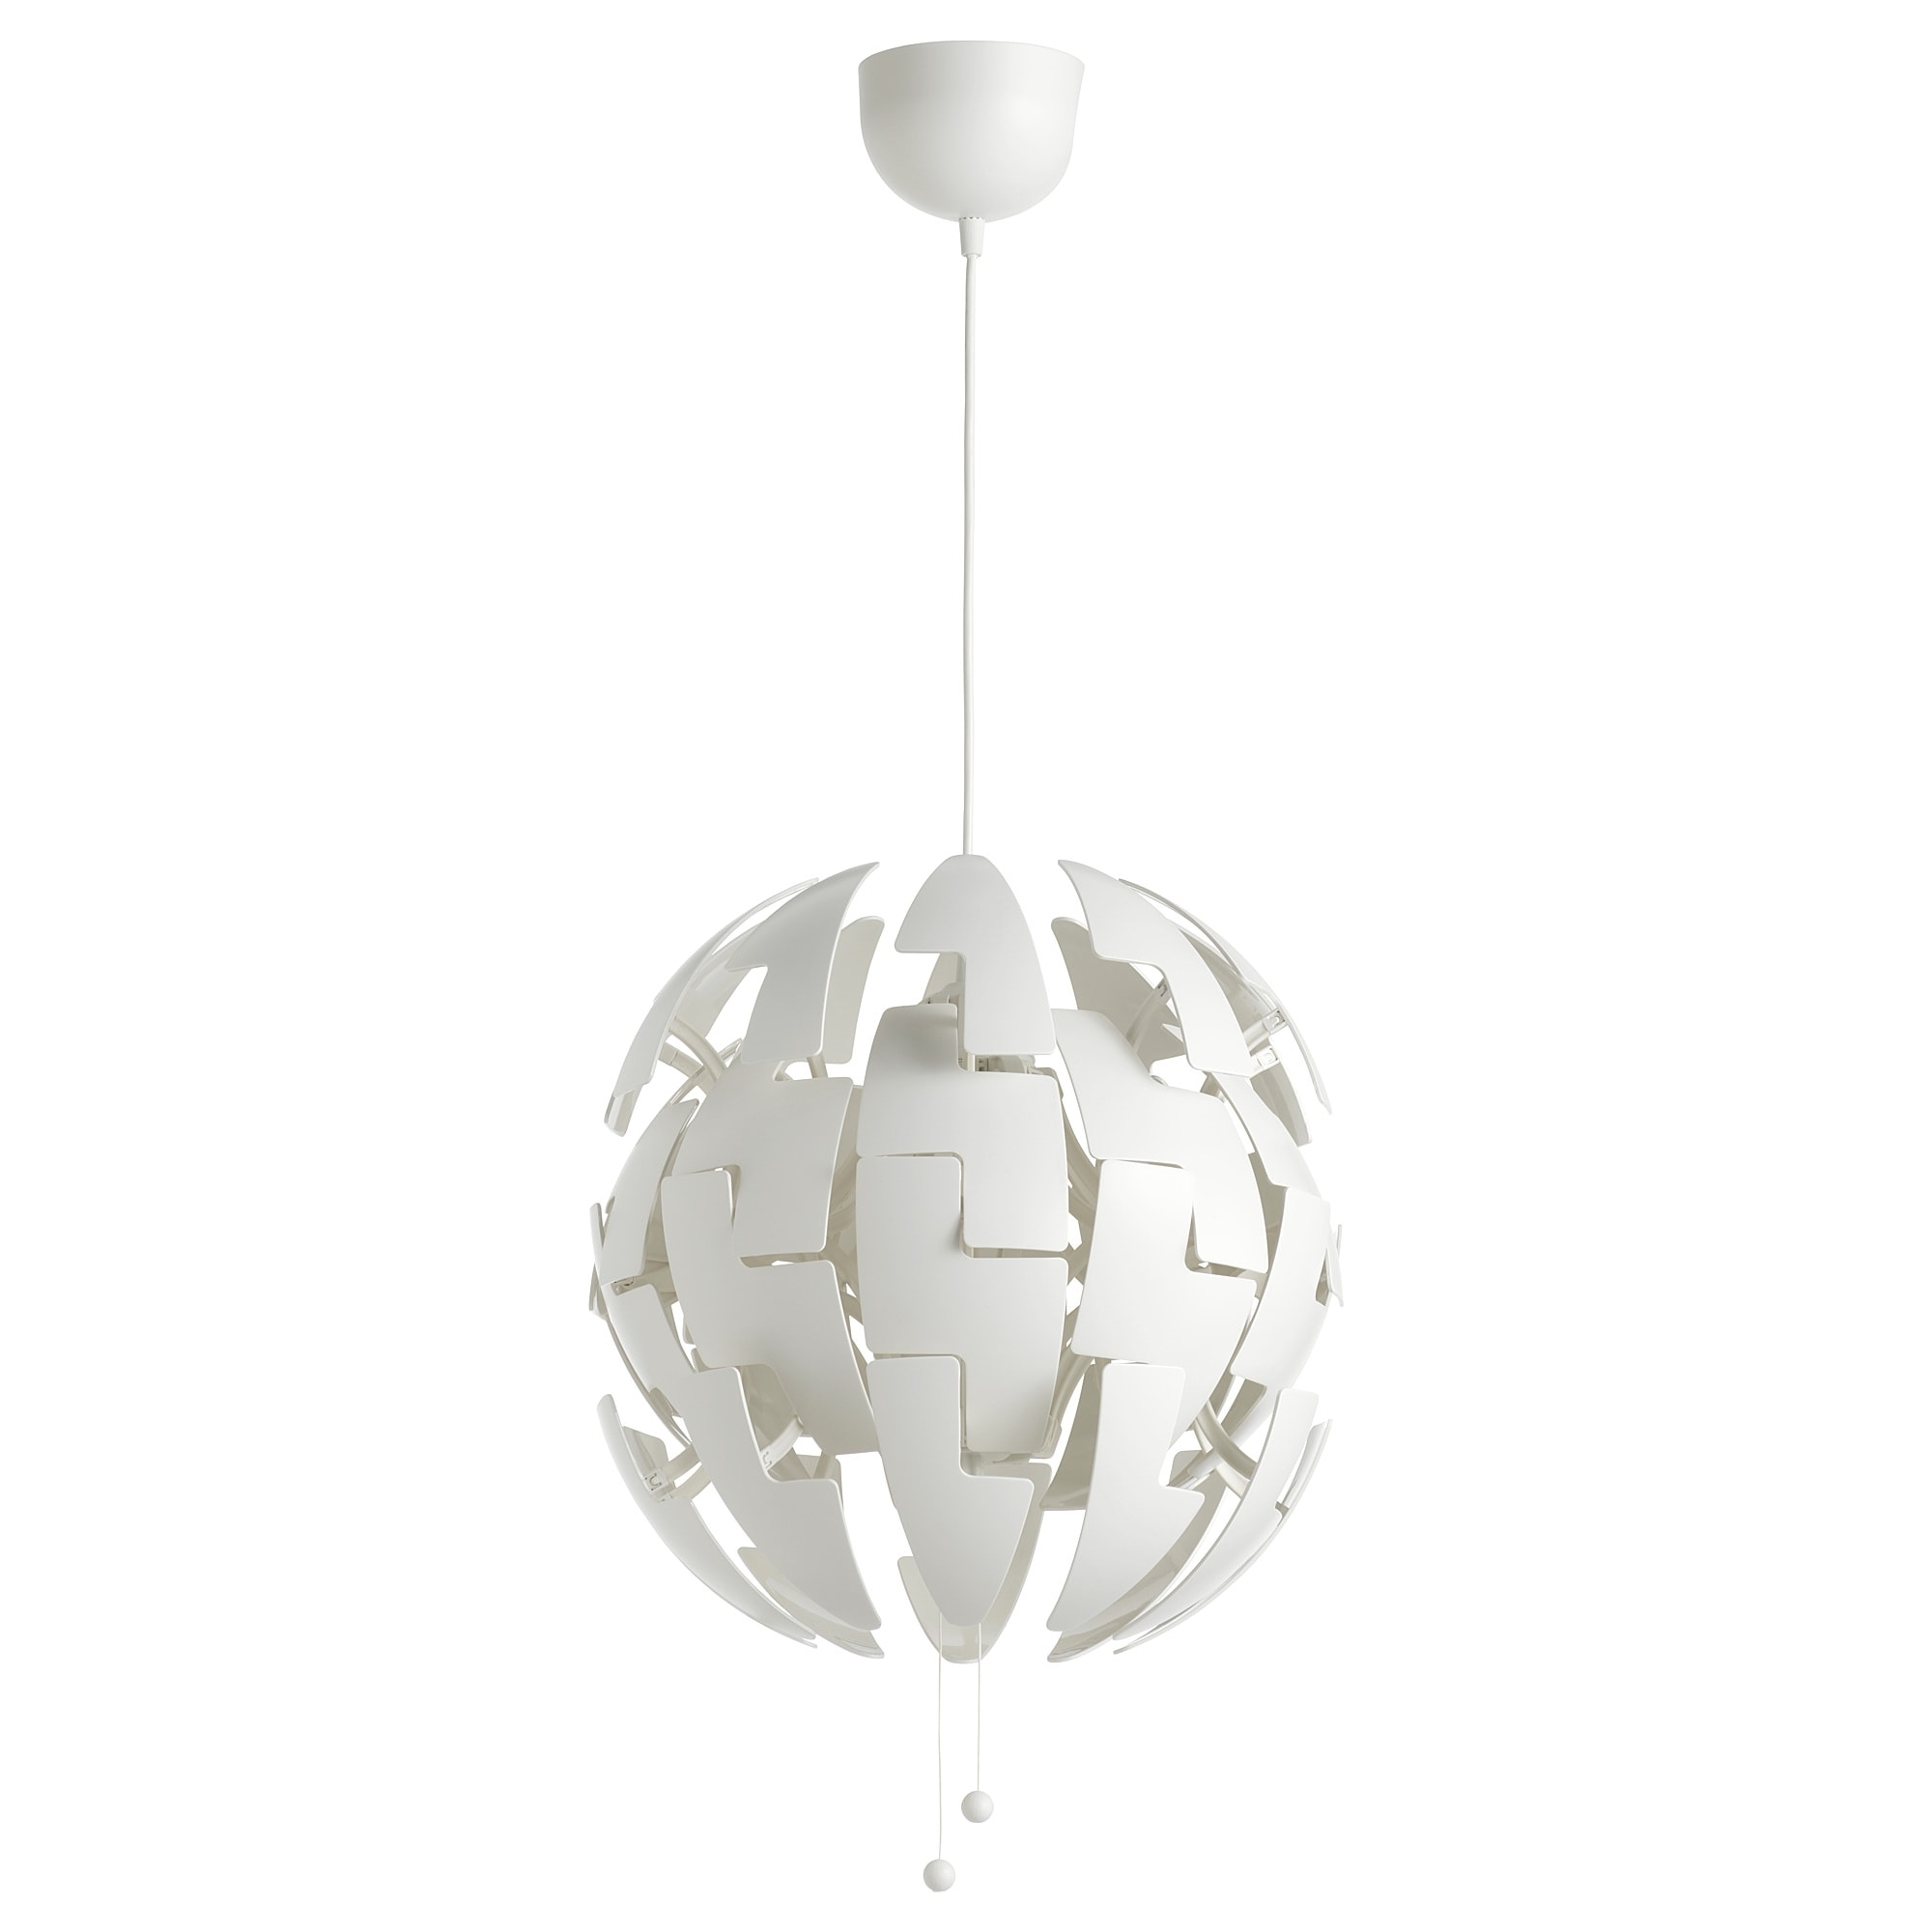 Ceiling Lights & Led Ceiling Lights Pertaining To Favorite Ikea Outdoor Ceiling Fans (View 18 of 20)